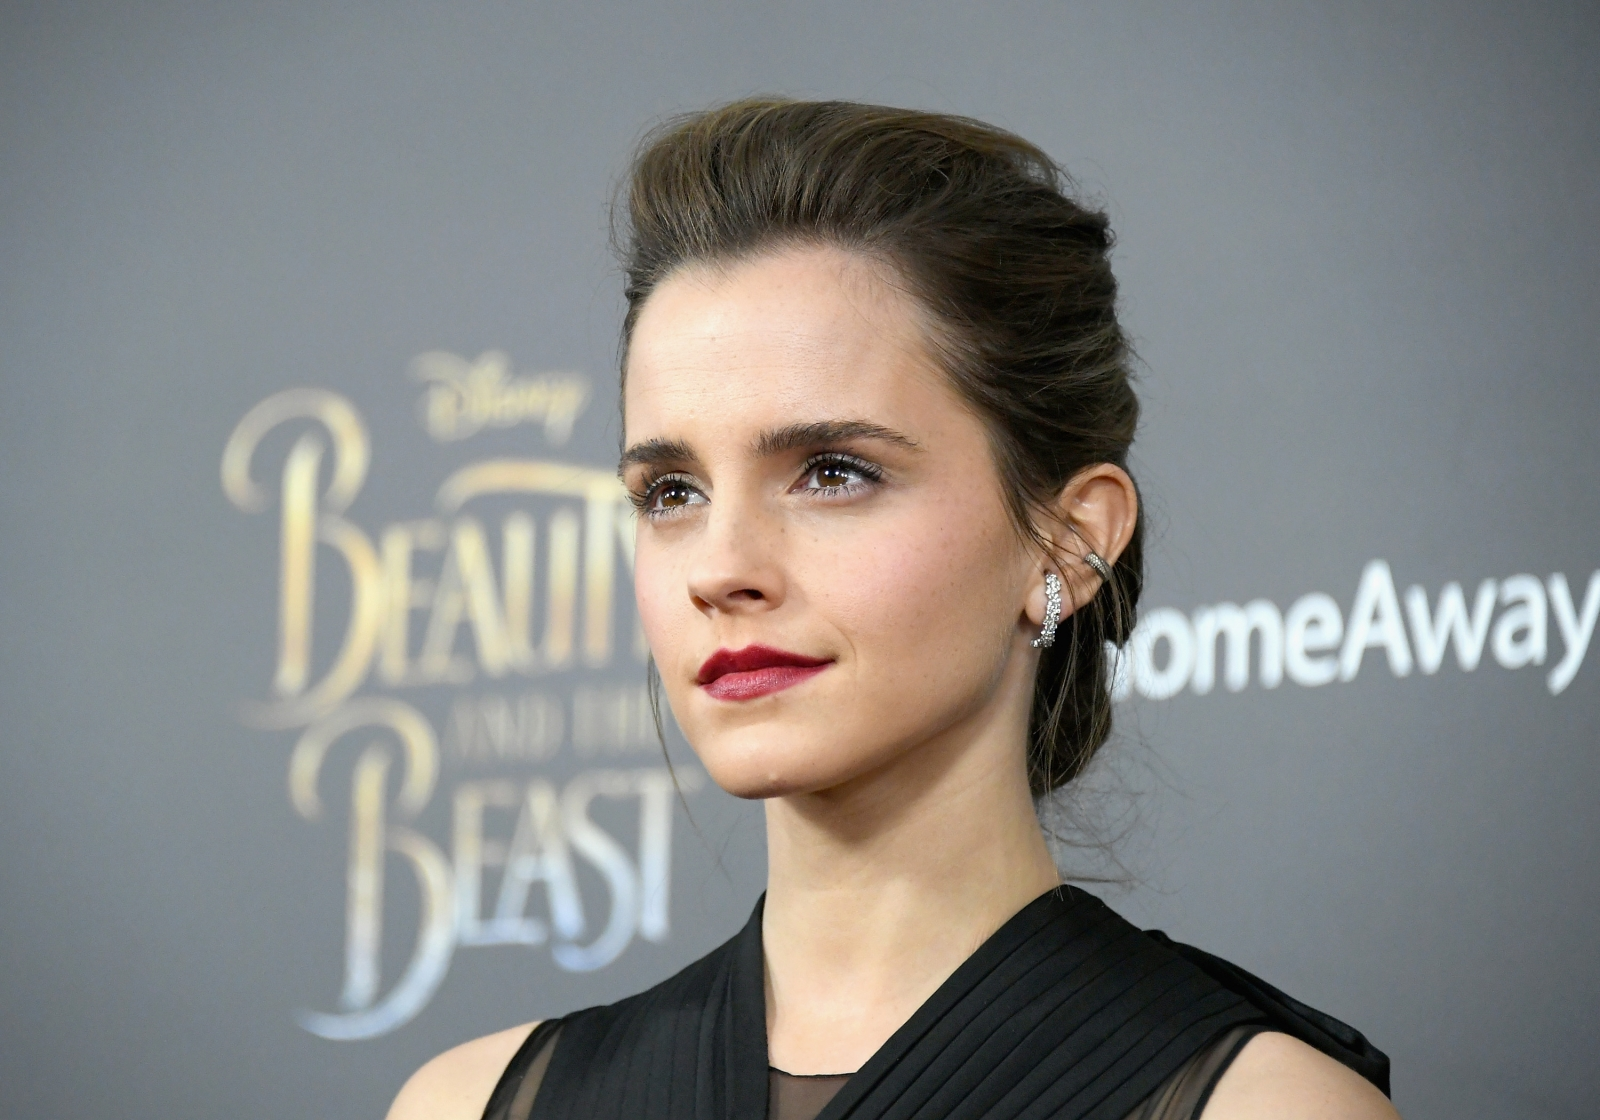 Emma Watson Furious Over Leaked Nude Photos And May Seek -2991